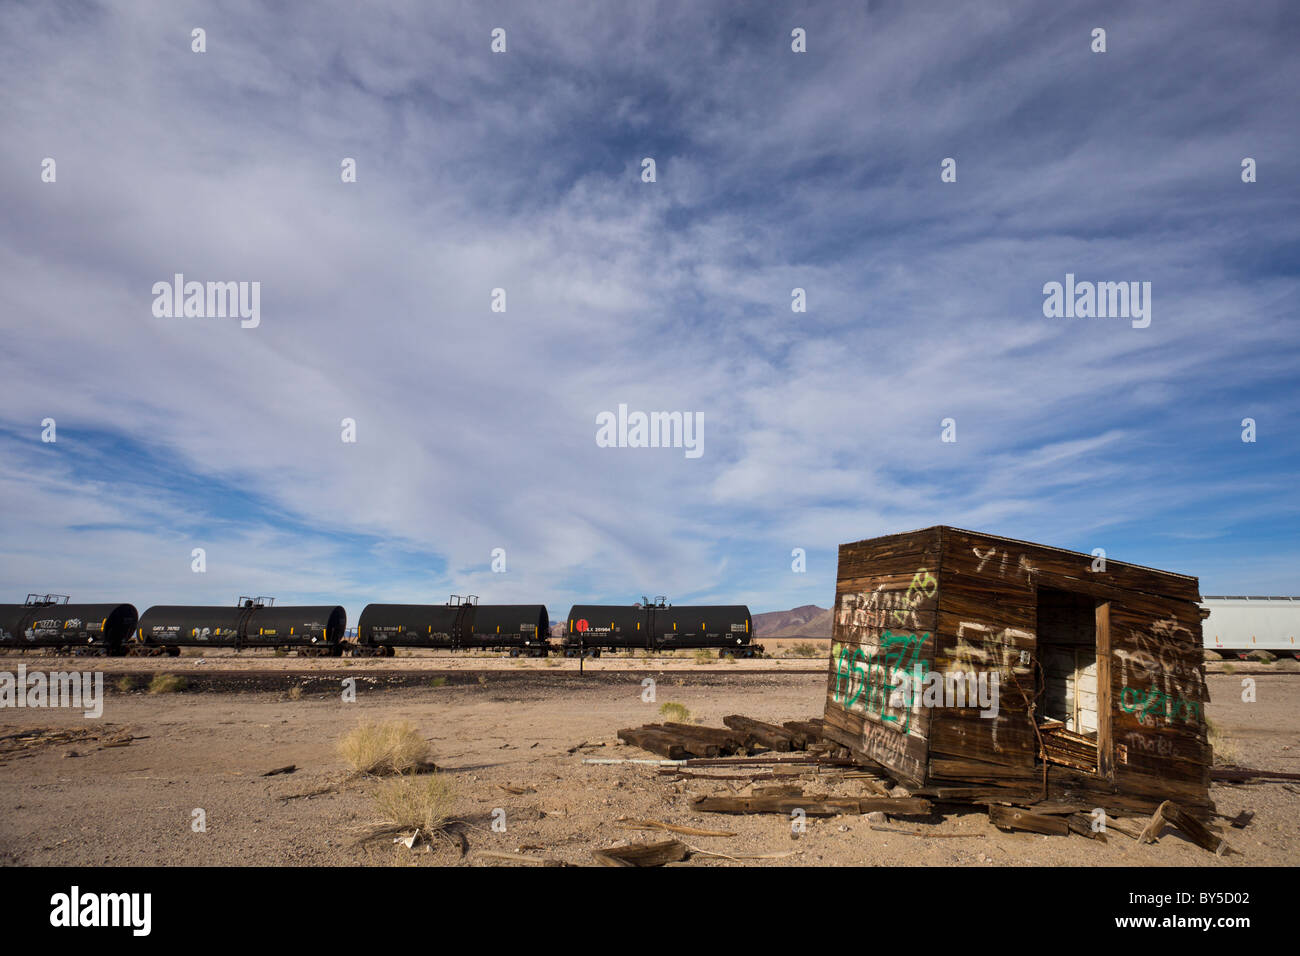 Abandoned depot with train and tracks along Highway 62 in the ghost town of Rice, California, USA. Stock Photo